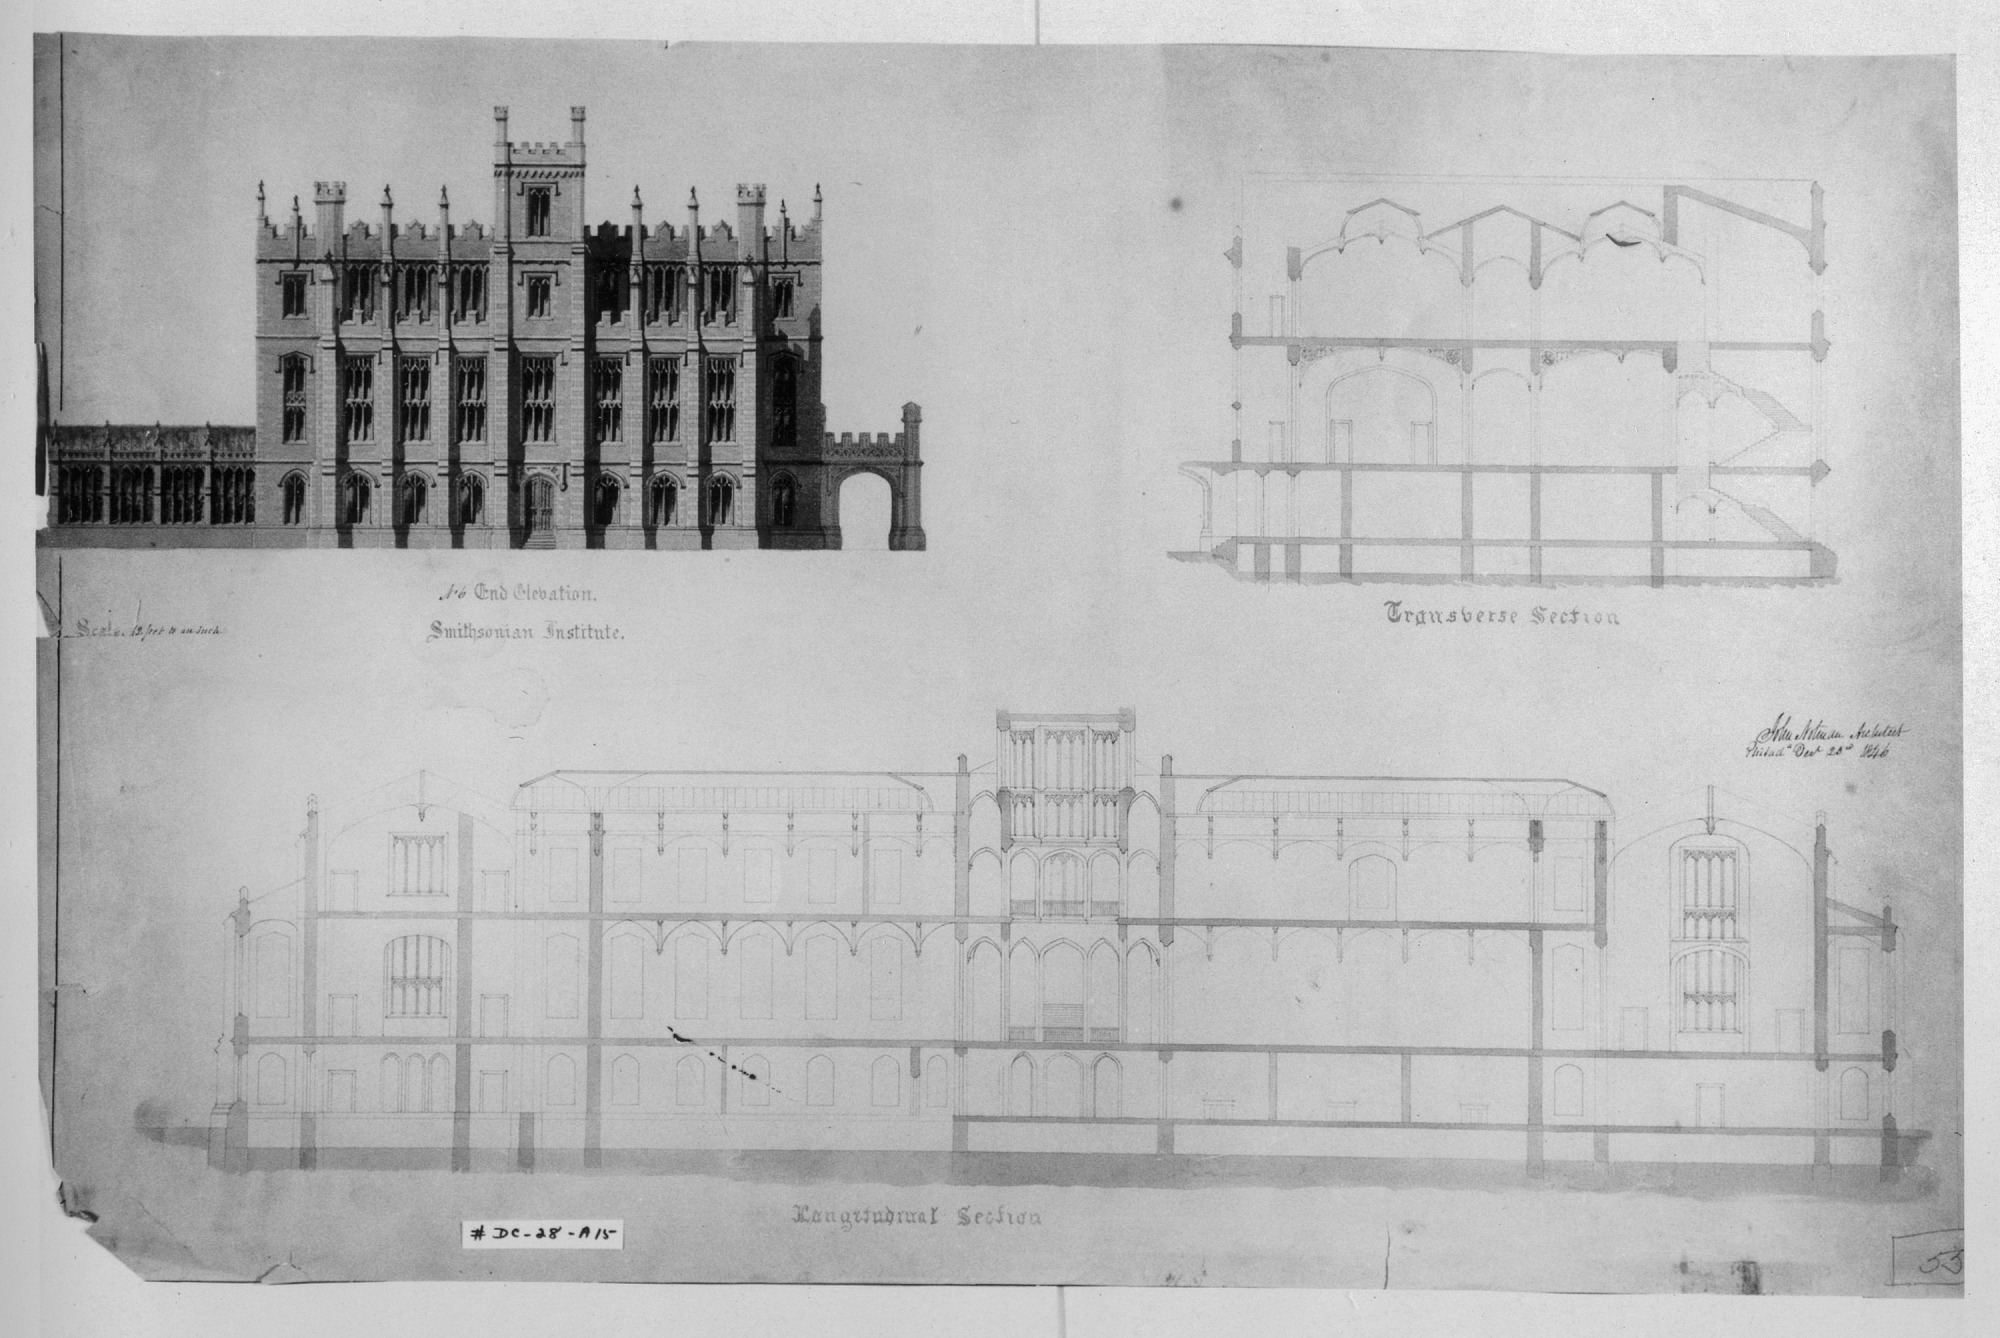 Architectural Drawings by Architect John Notman for Competition of 1846